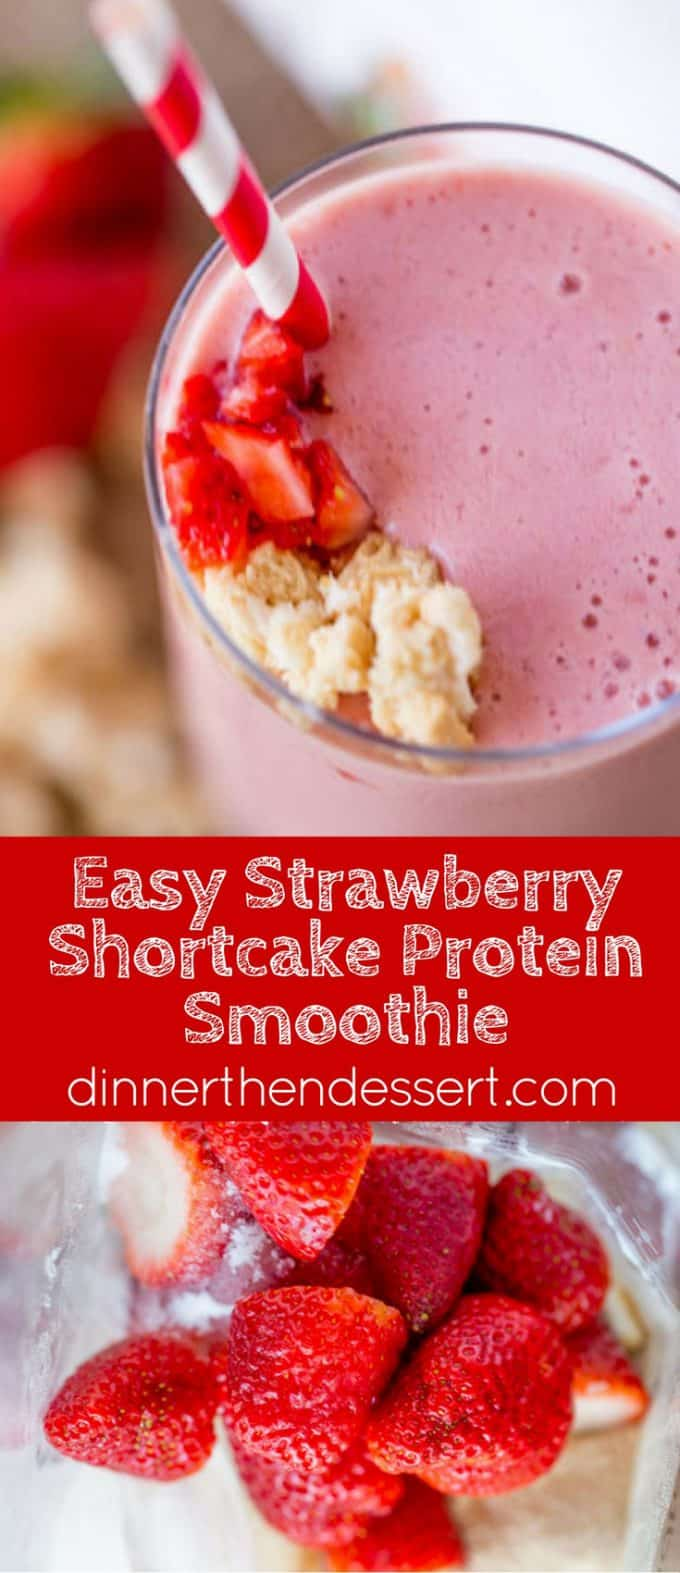 Strawberry Shortcake Smoothie made with Burt's Bees Vanilla Protein Shake powder makes the most amazing cake-y healthy smoothie you'll want to help shake up healthier eating.